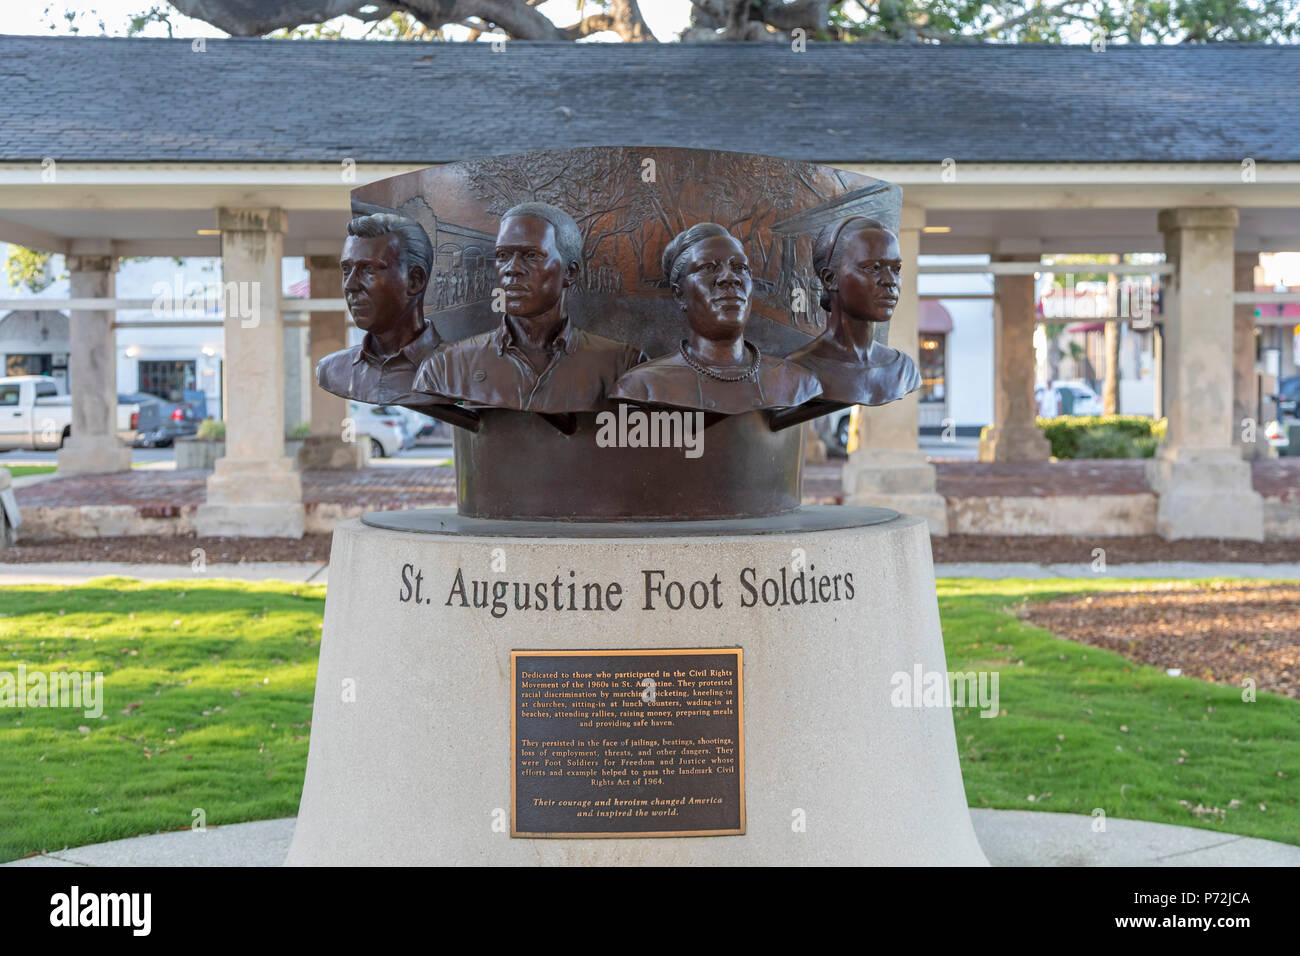 St. Augustine, Florida - A monument to those who participated in the civil rights movement of the 1960s in St. Augustine. Activists experienced arrest - Stock Image